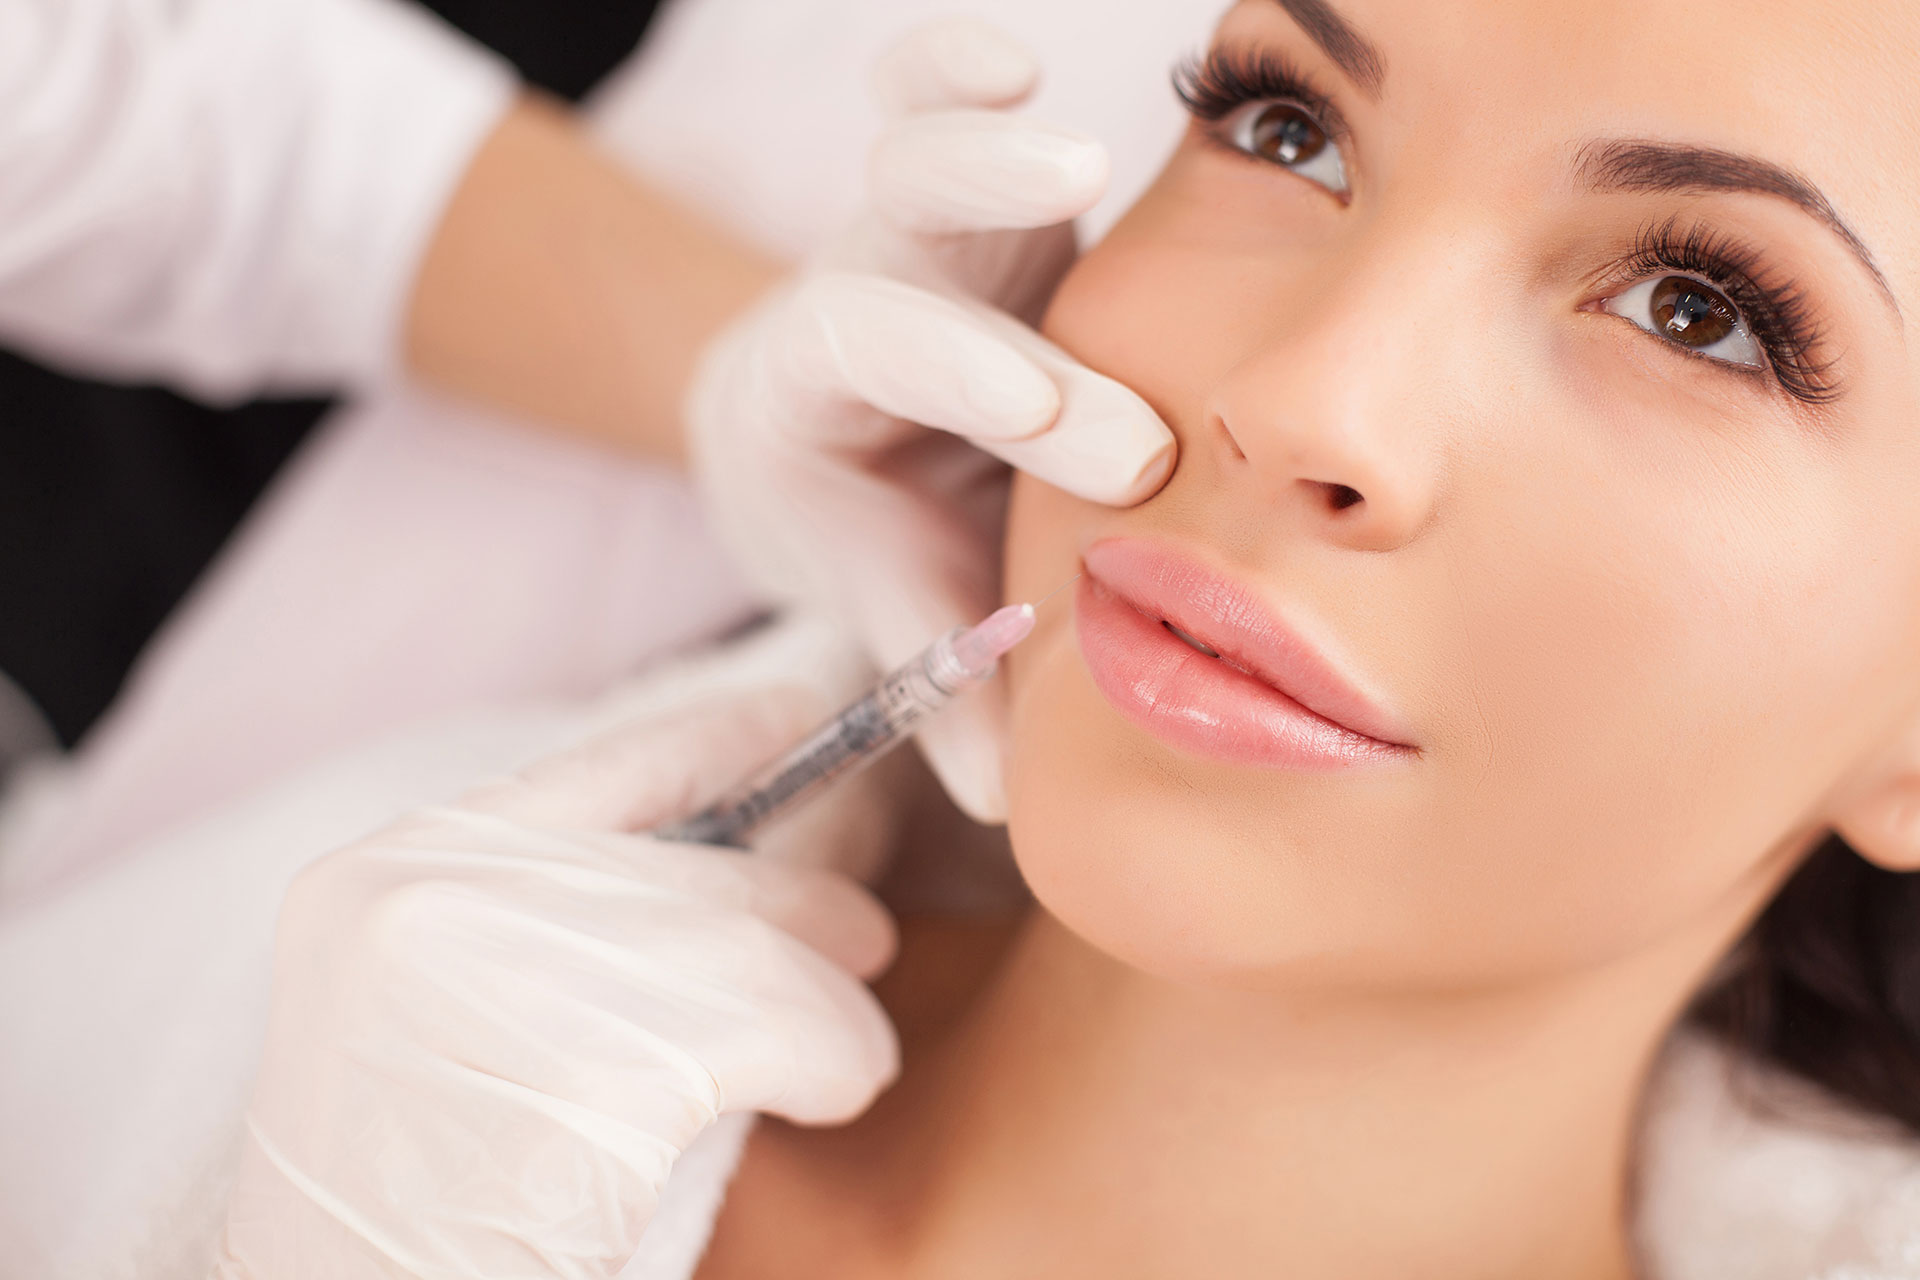 BOTOX-LONDON-BOTOX-TREATMENT-&-INJECTIONS-LONDON-5